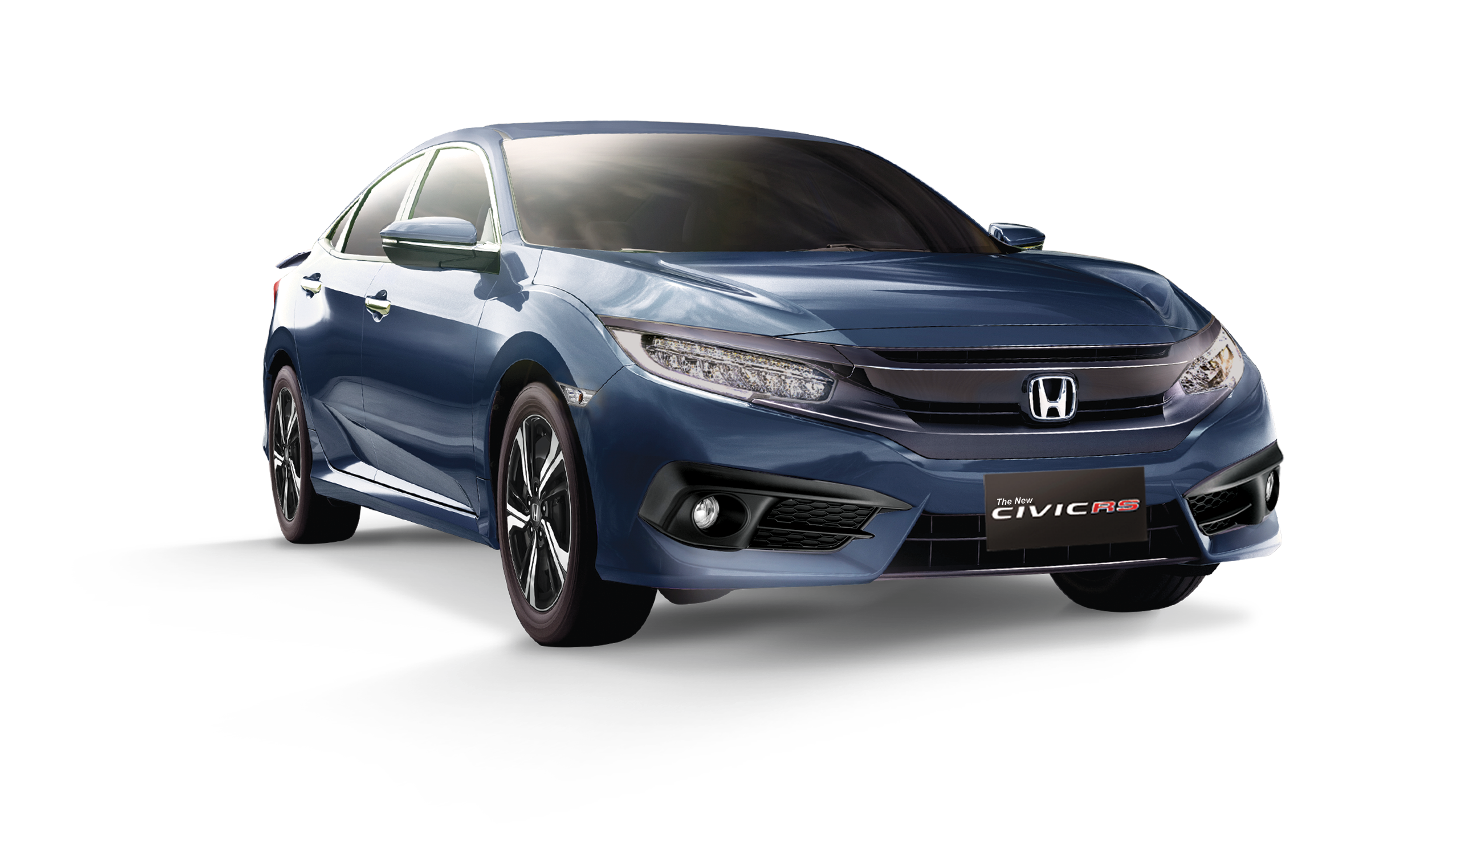 April 25 2017 honda cars philippines inc hcpi honda s automobile business unit introduces new upgrades for the 2017 all new civic rs turbo with the